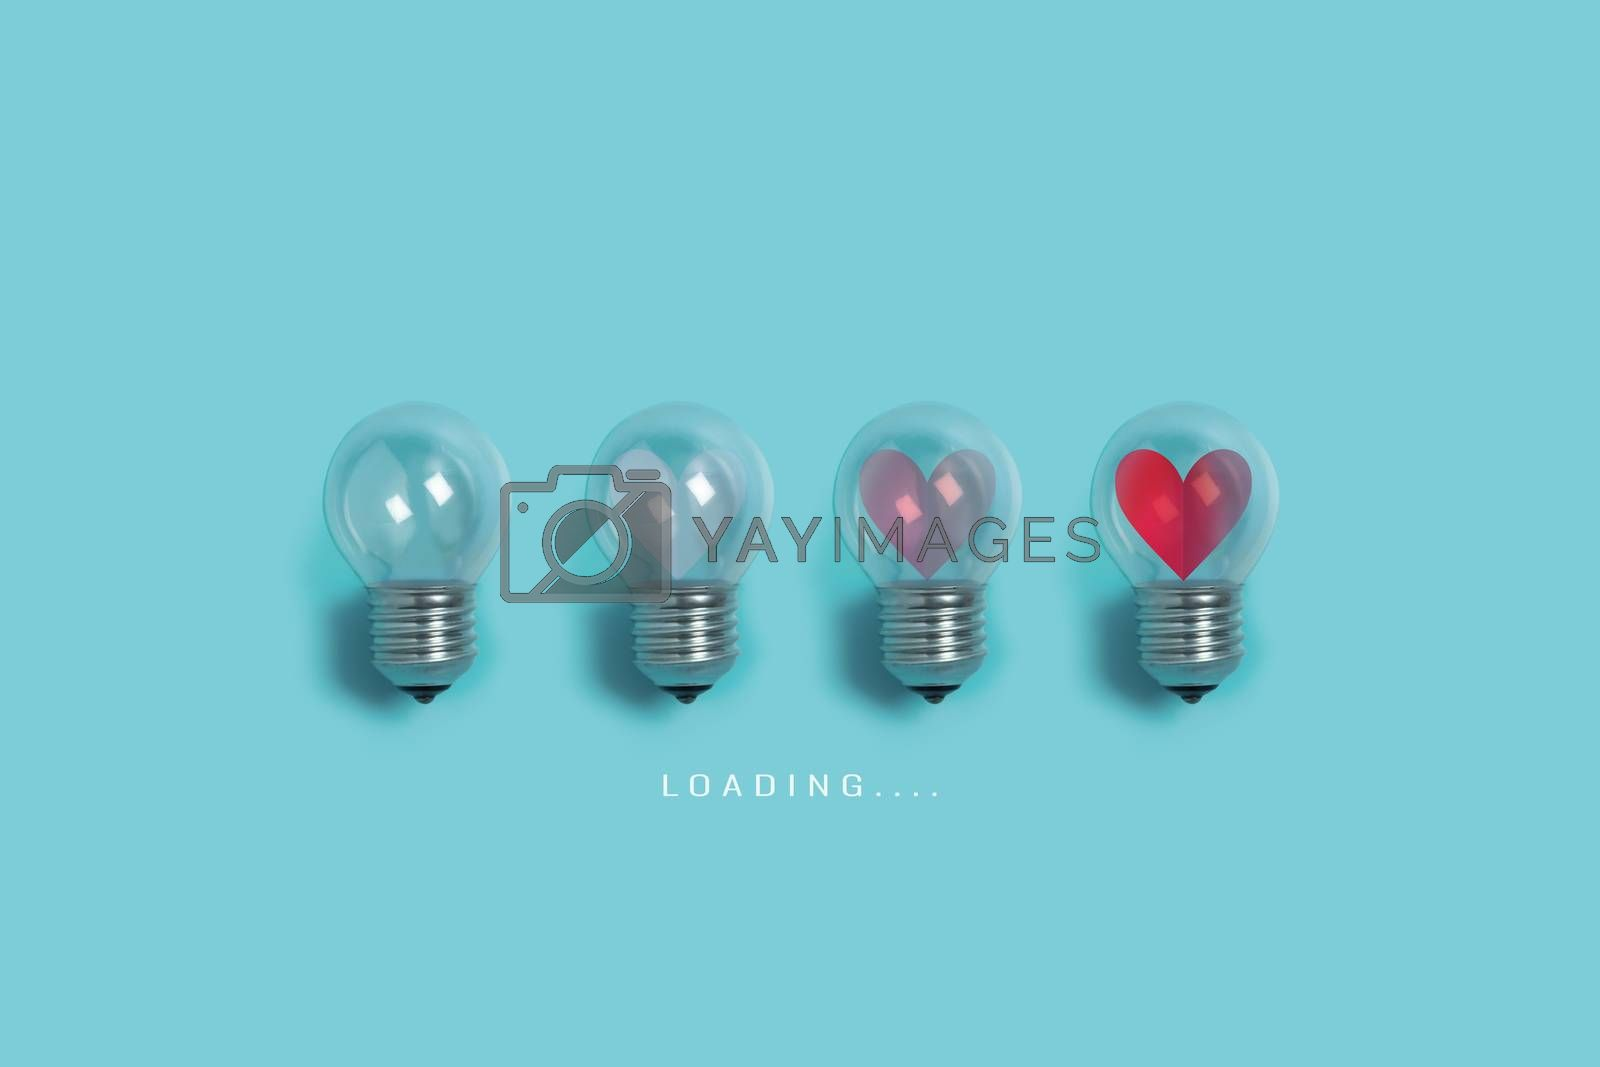 Red hearts in light bulbs. Loading progress bar on blue background. Valentine's day, Creative idea, Love, Inspiration Concepts.